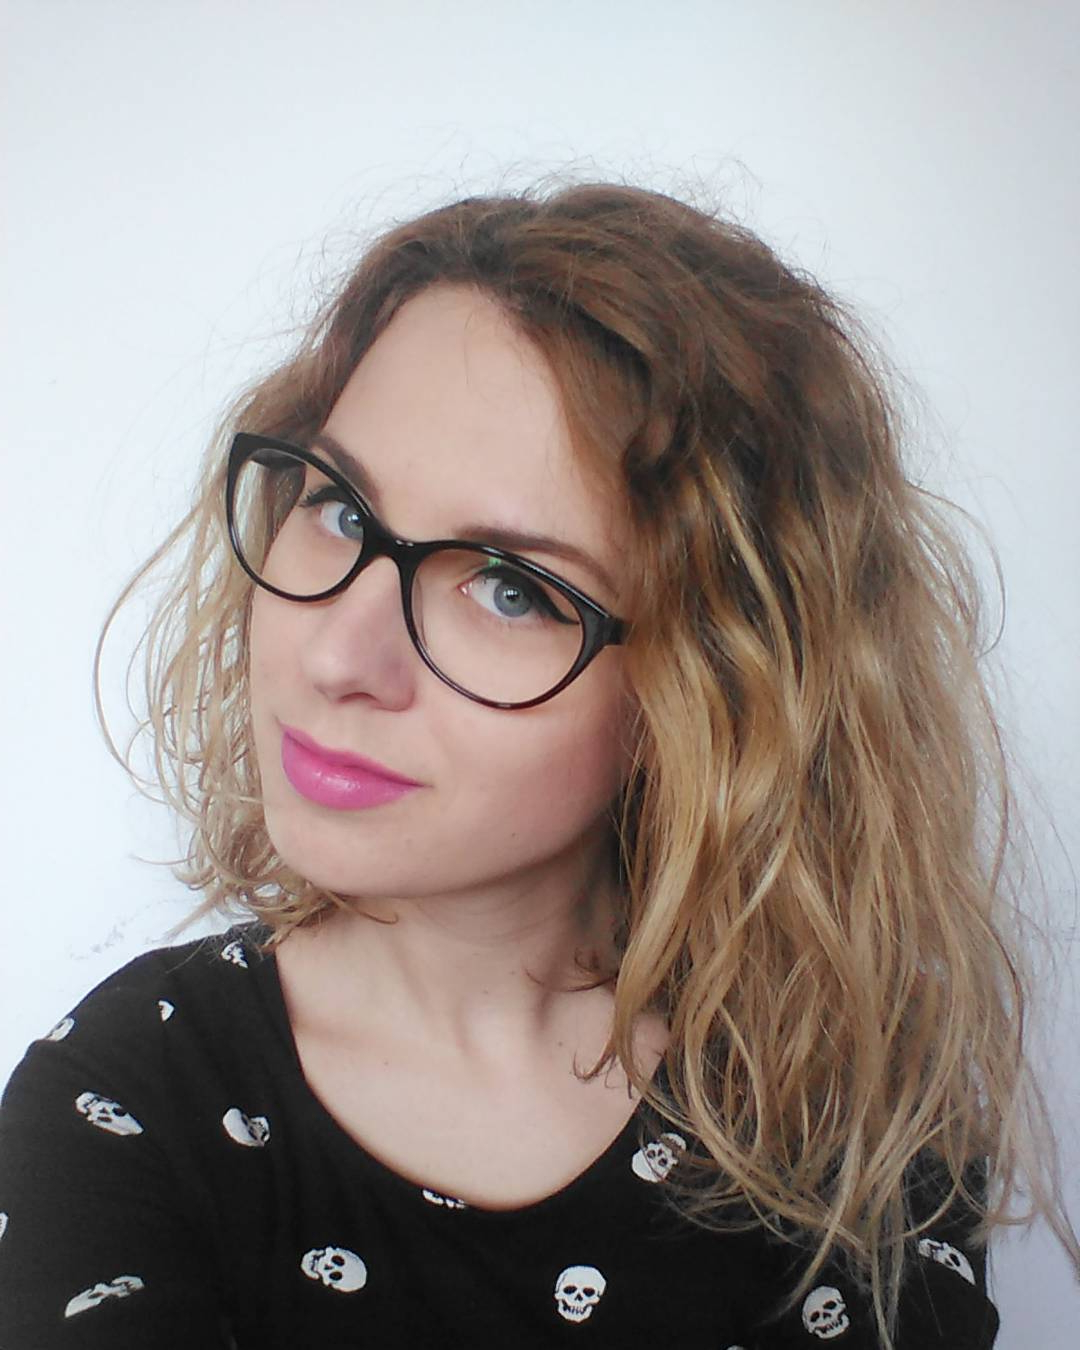 [%Most Current Medium Haircuts For Wavy Hair Regarding 30 Edgy Medium Length Haircuts For Thick Hair [October, 2018]|30 Edgy Medium Length Haircuts For Thick Hair [October, 2018] With Best And Newest Medium Haircuts For Wavy Hair%] (View 1 of 20)